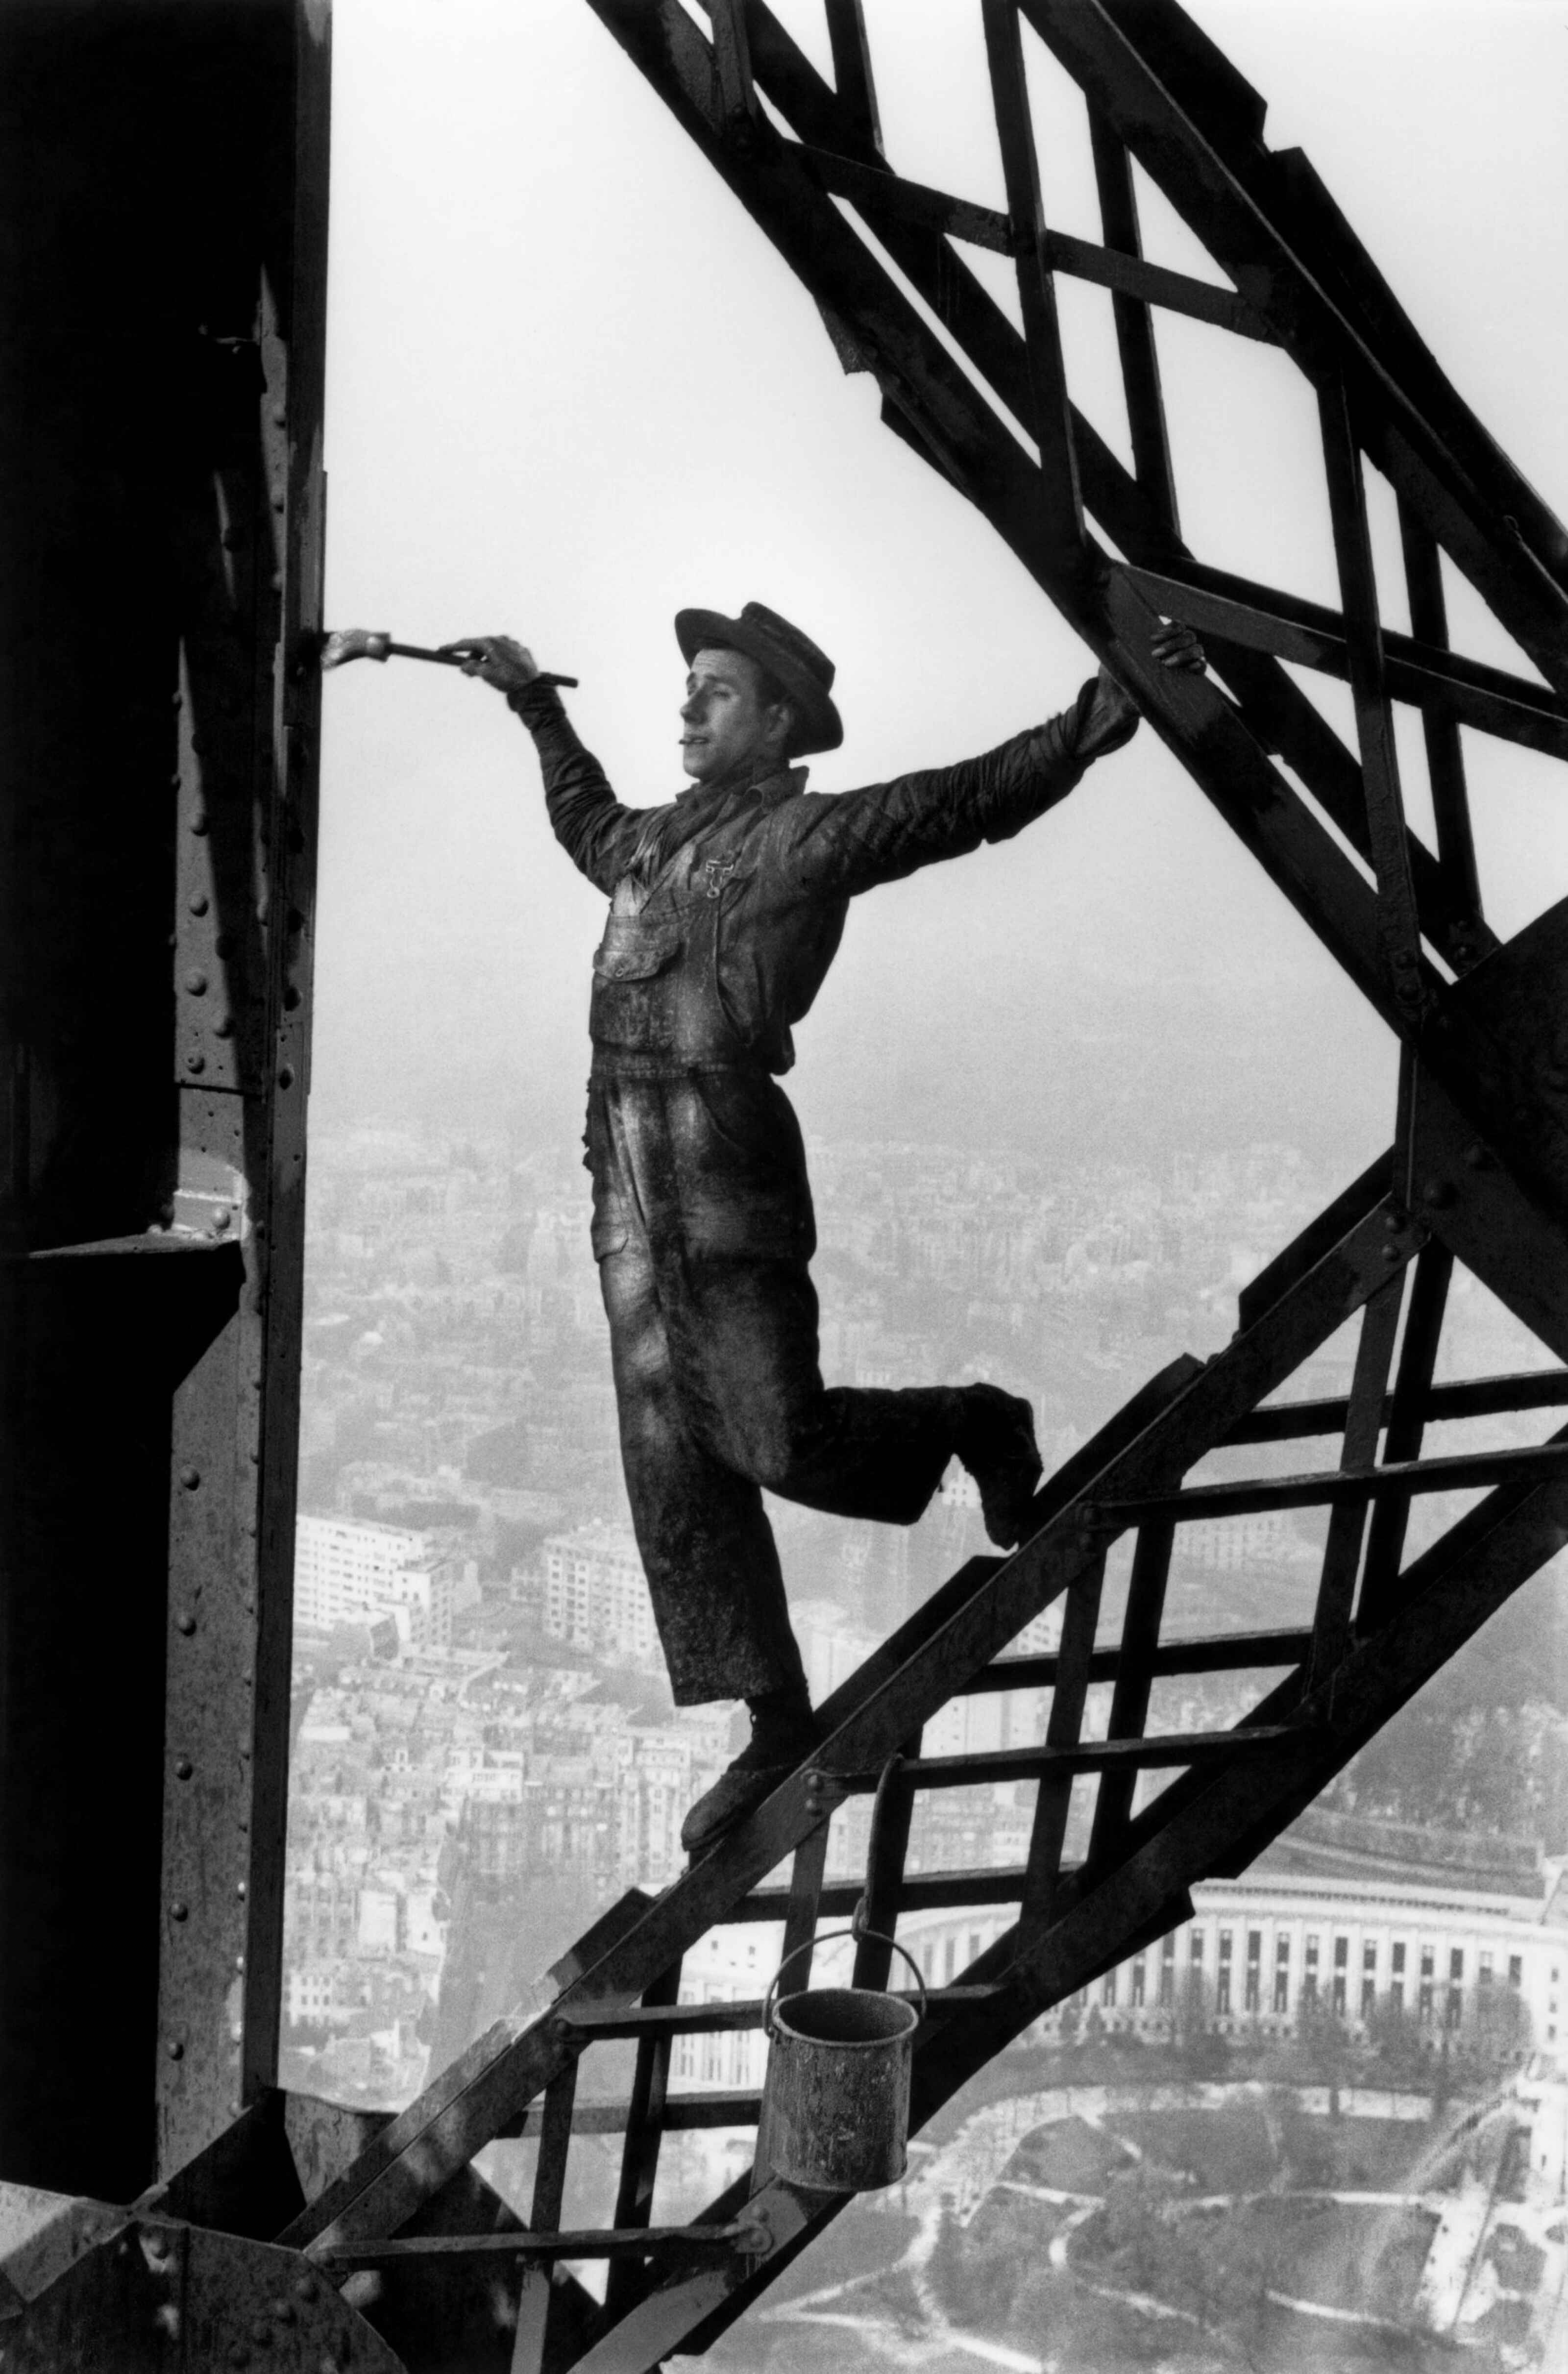 1953 Marc Riboud, Le peintre de la tour Eiffel - Paris